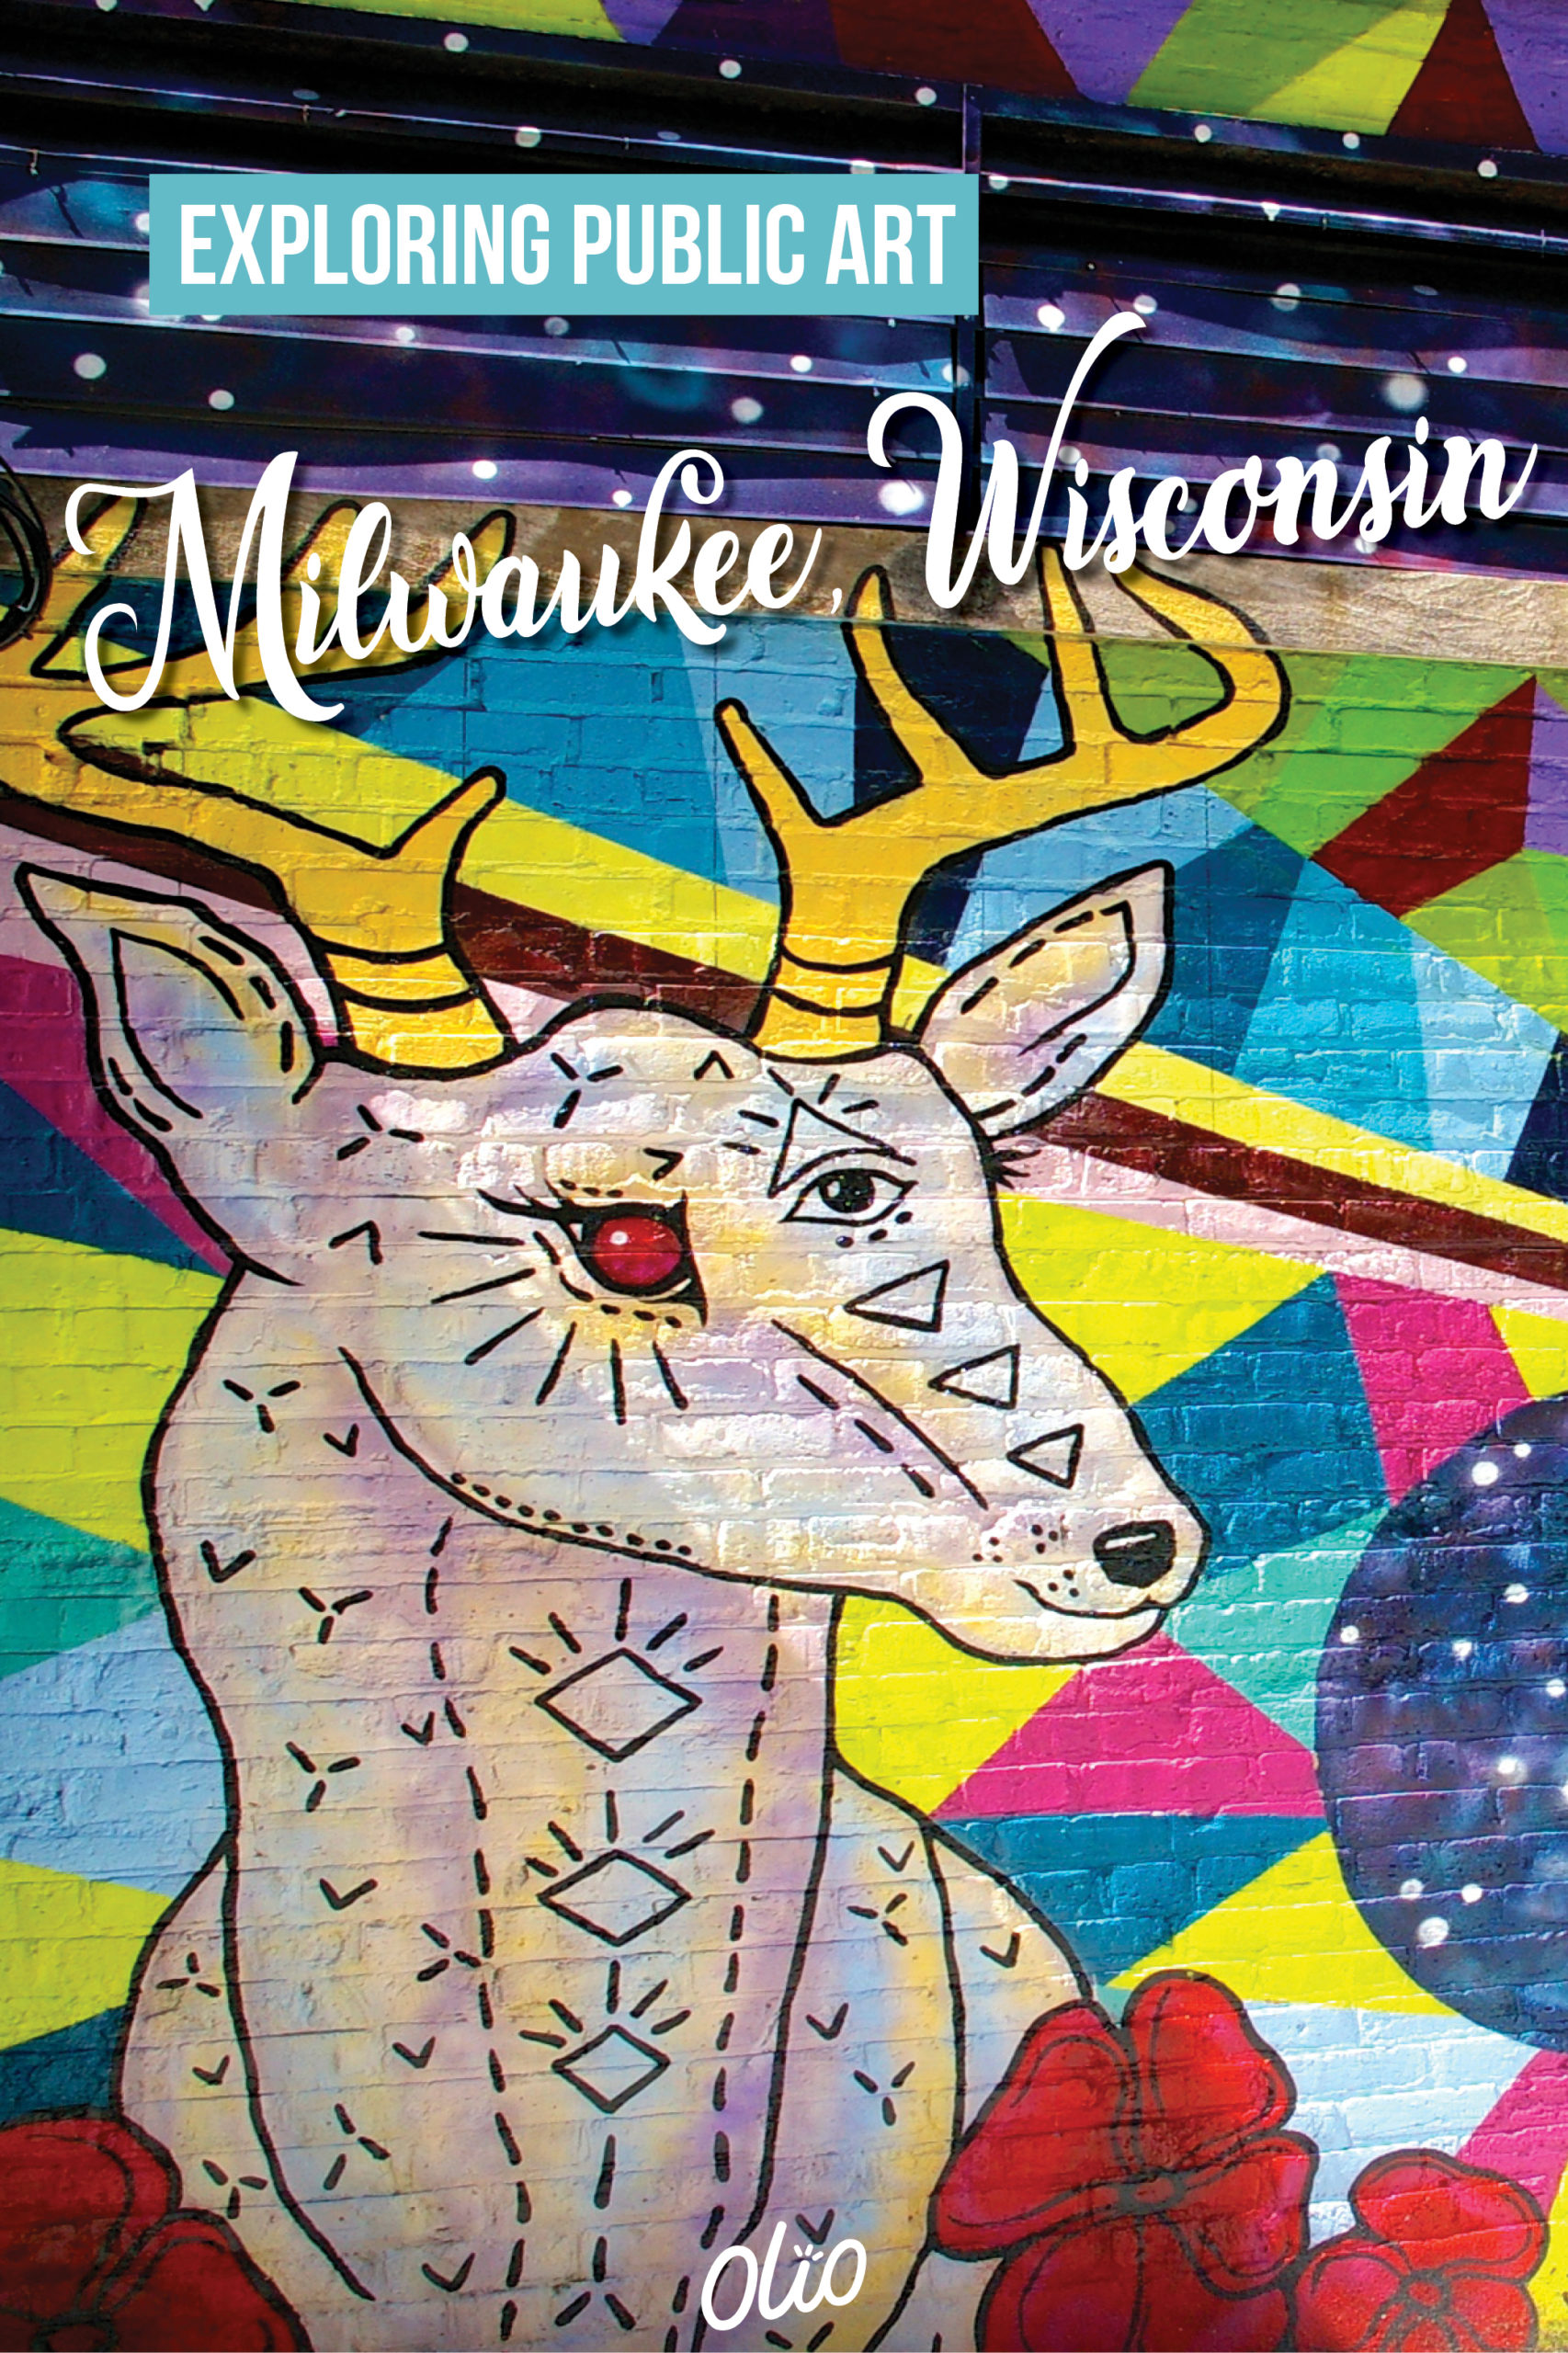 Of all the things to do in downtown Milwaukee, Wisconsin, the public art scene is not to be missed! From colorful murals to sculptures attached to office buildings, exploring public art in Milwaukee is a great activity for kids, art lovers and everyone in between. #Milwaukee #Wisconsin #publicart